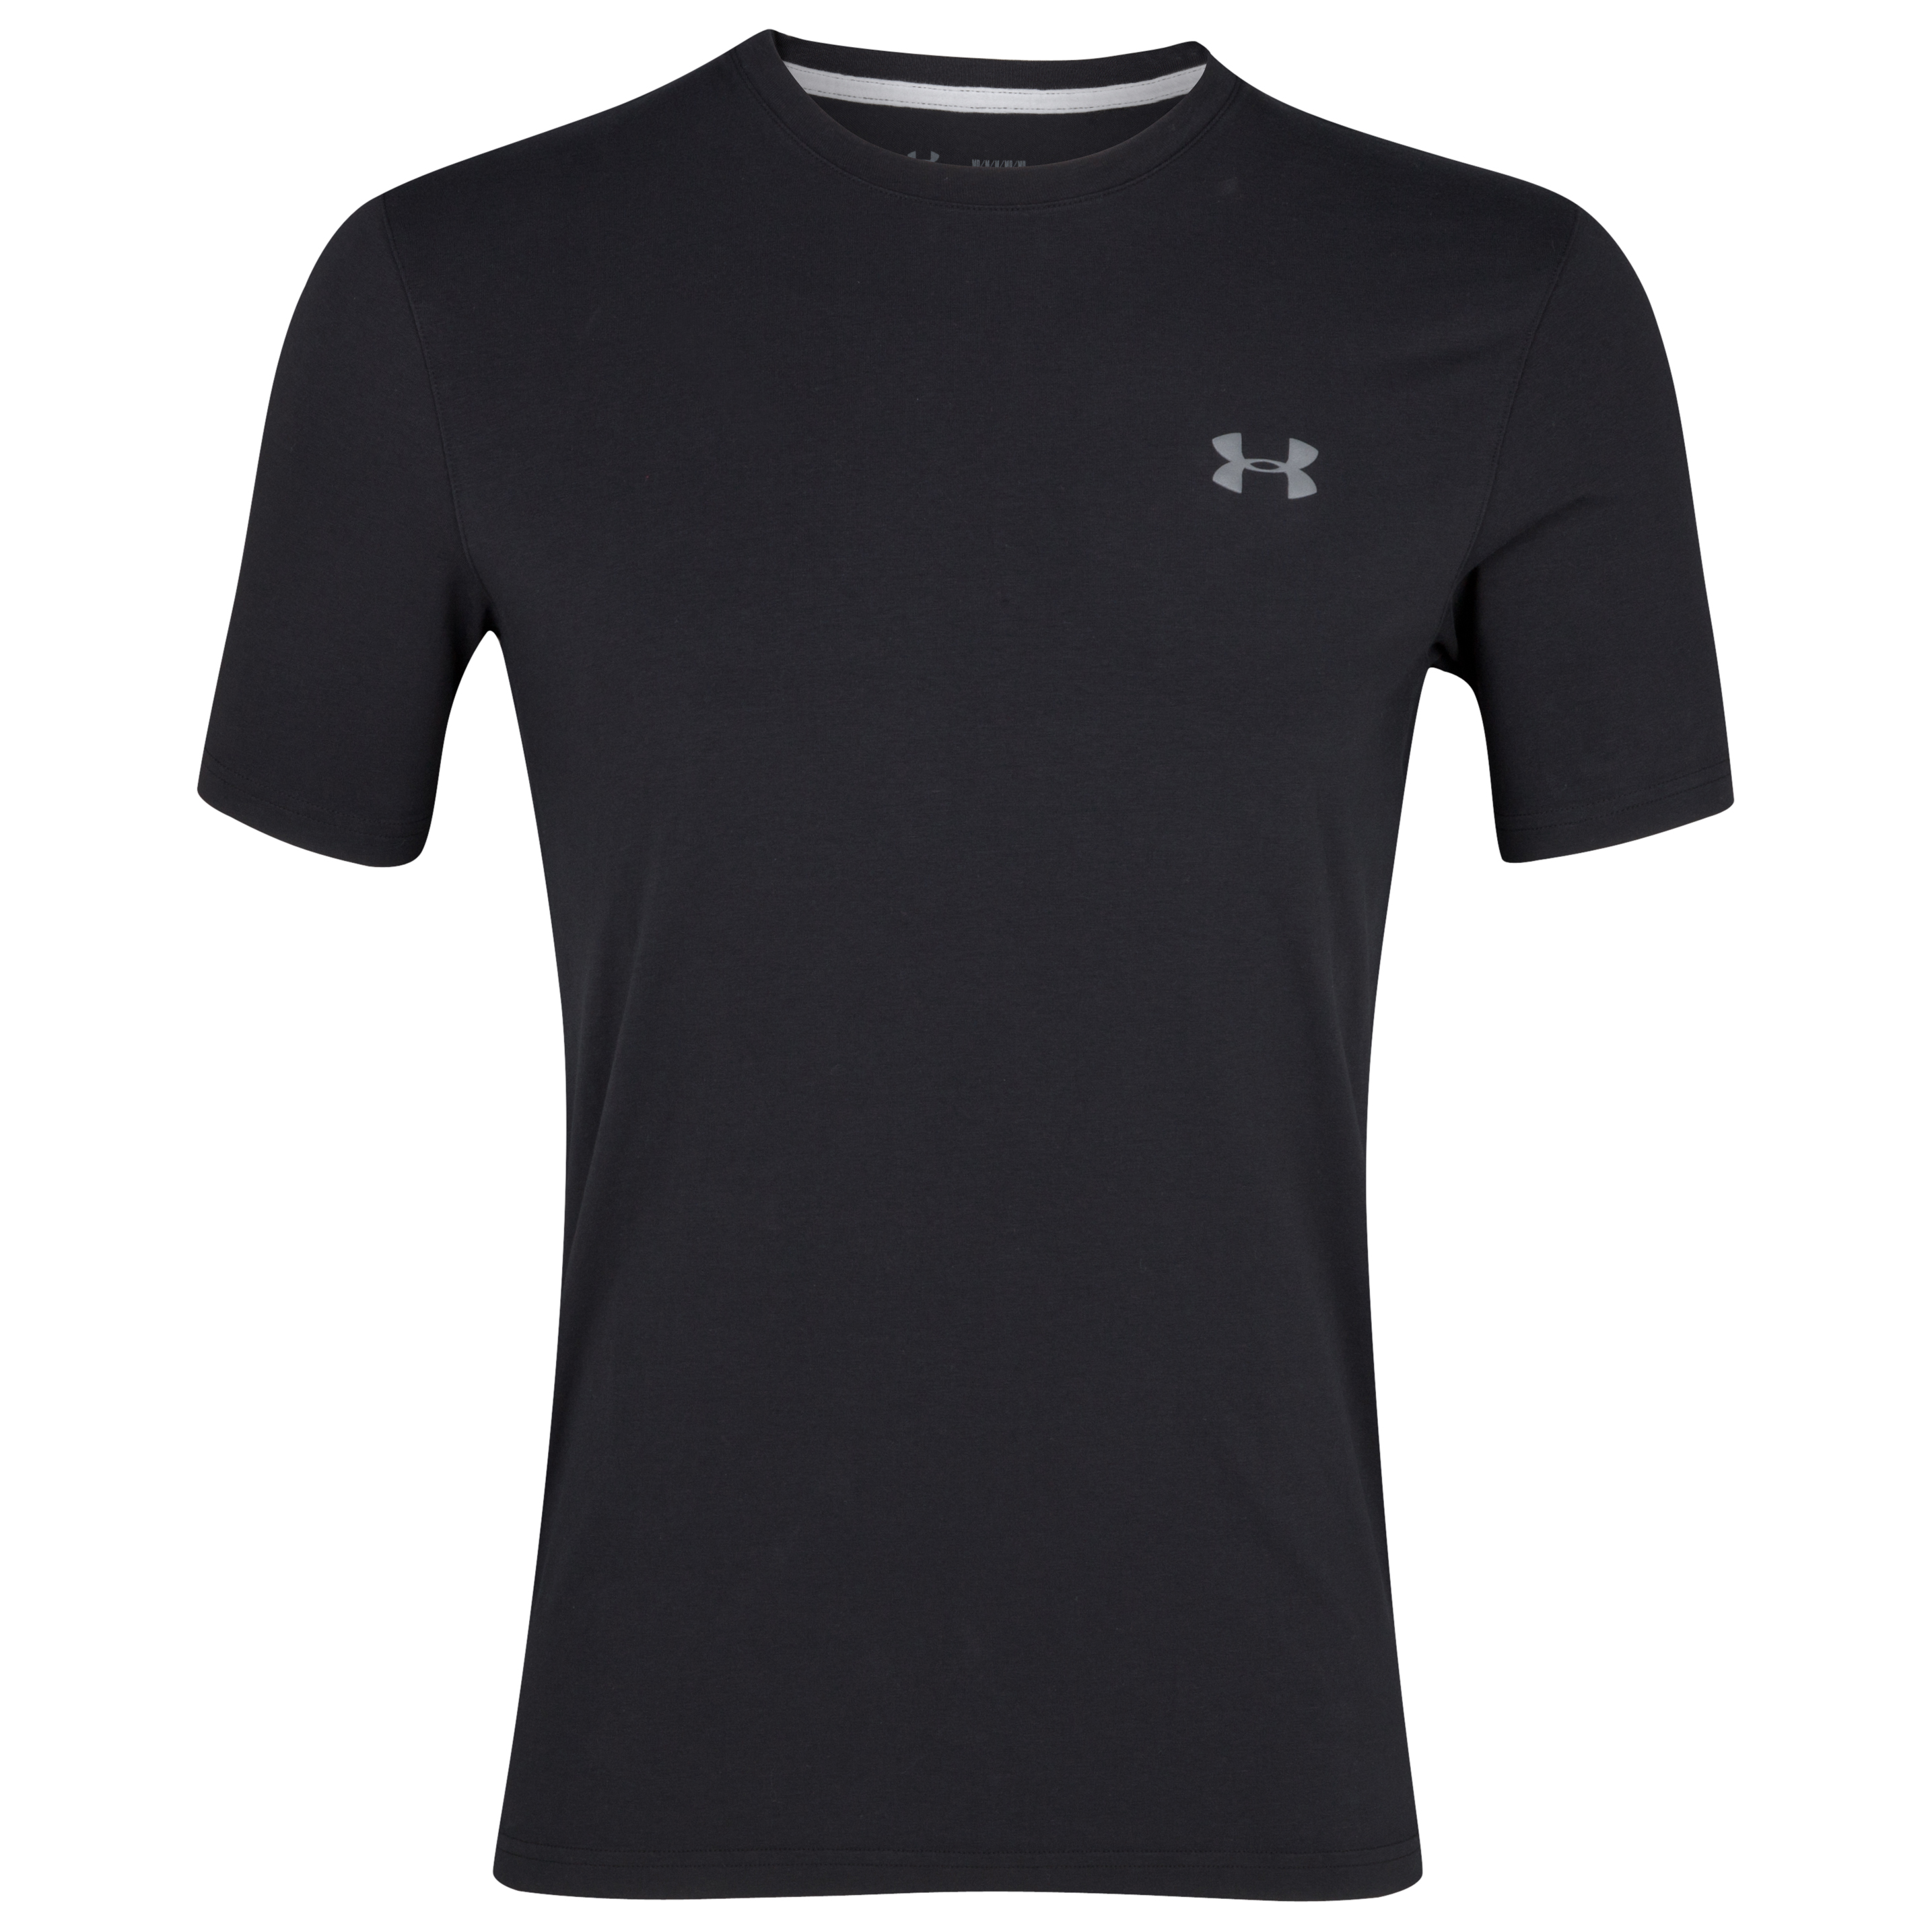 Under Armour Charged Cotton T-Shirt - Black/Graphite